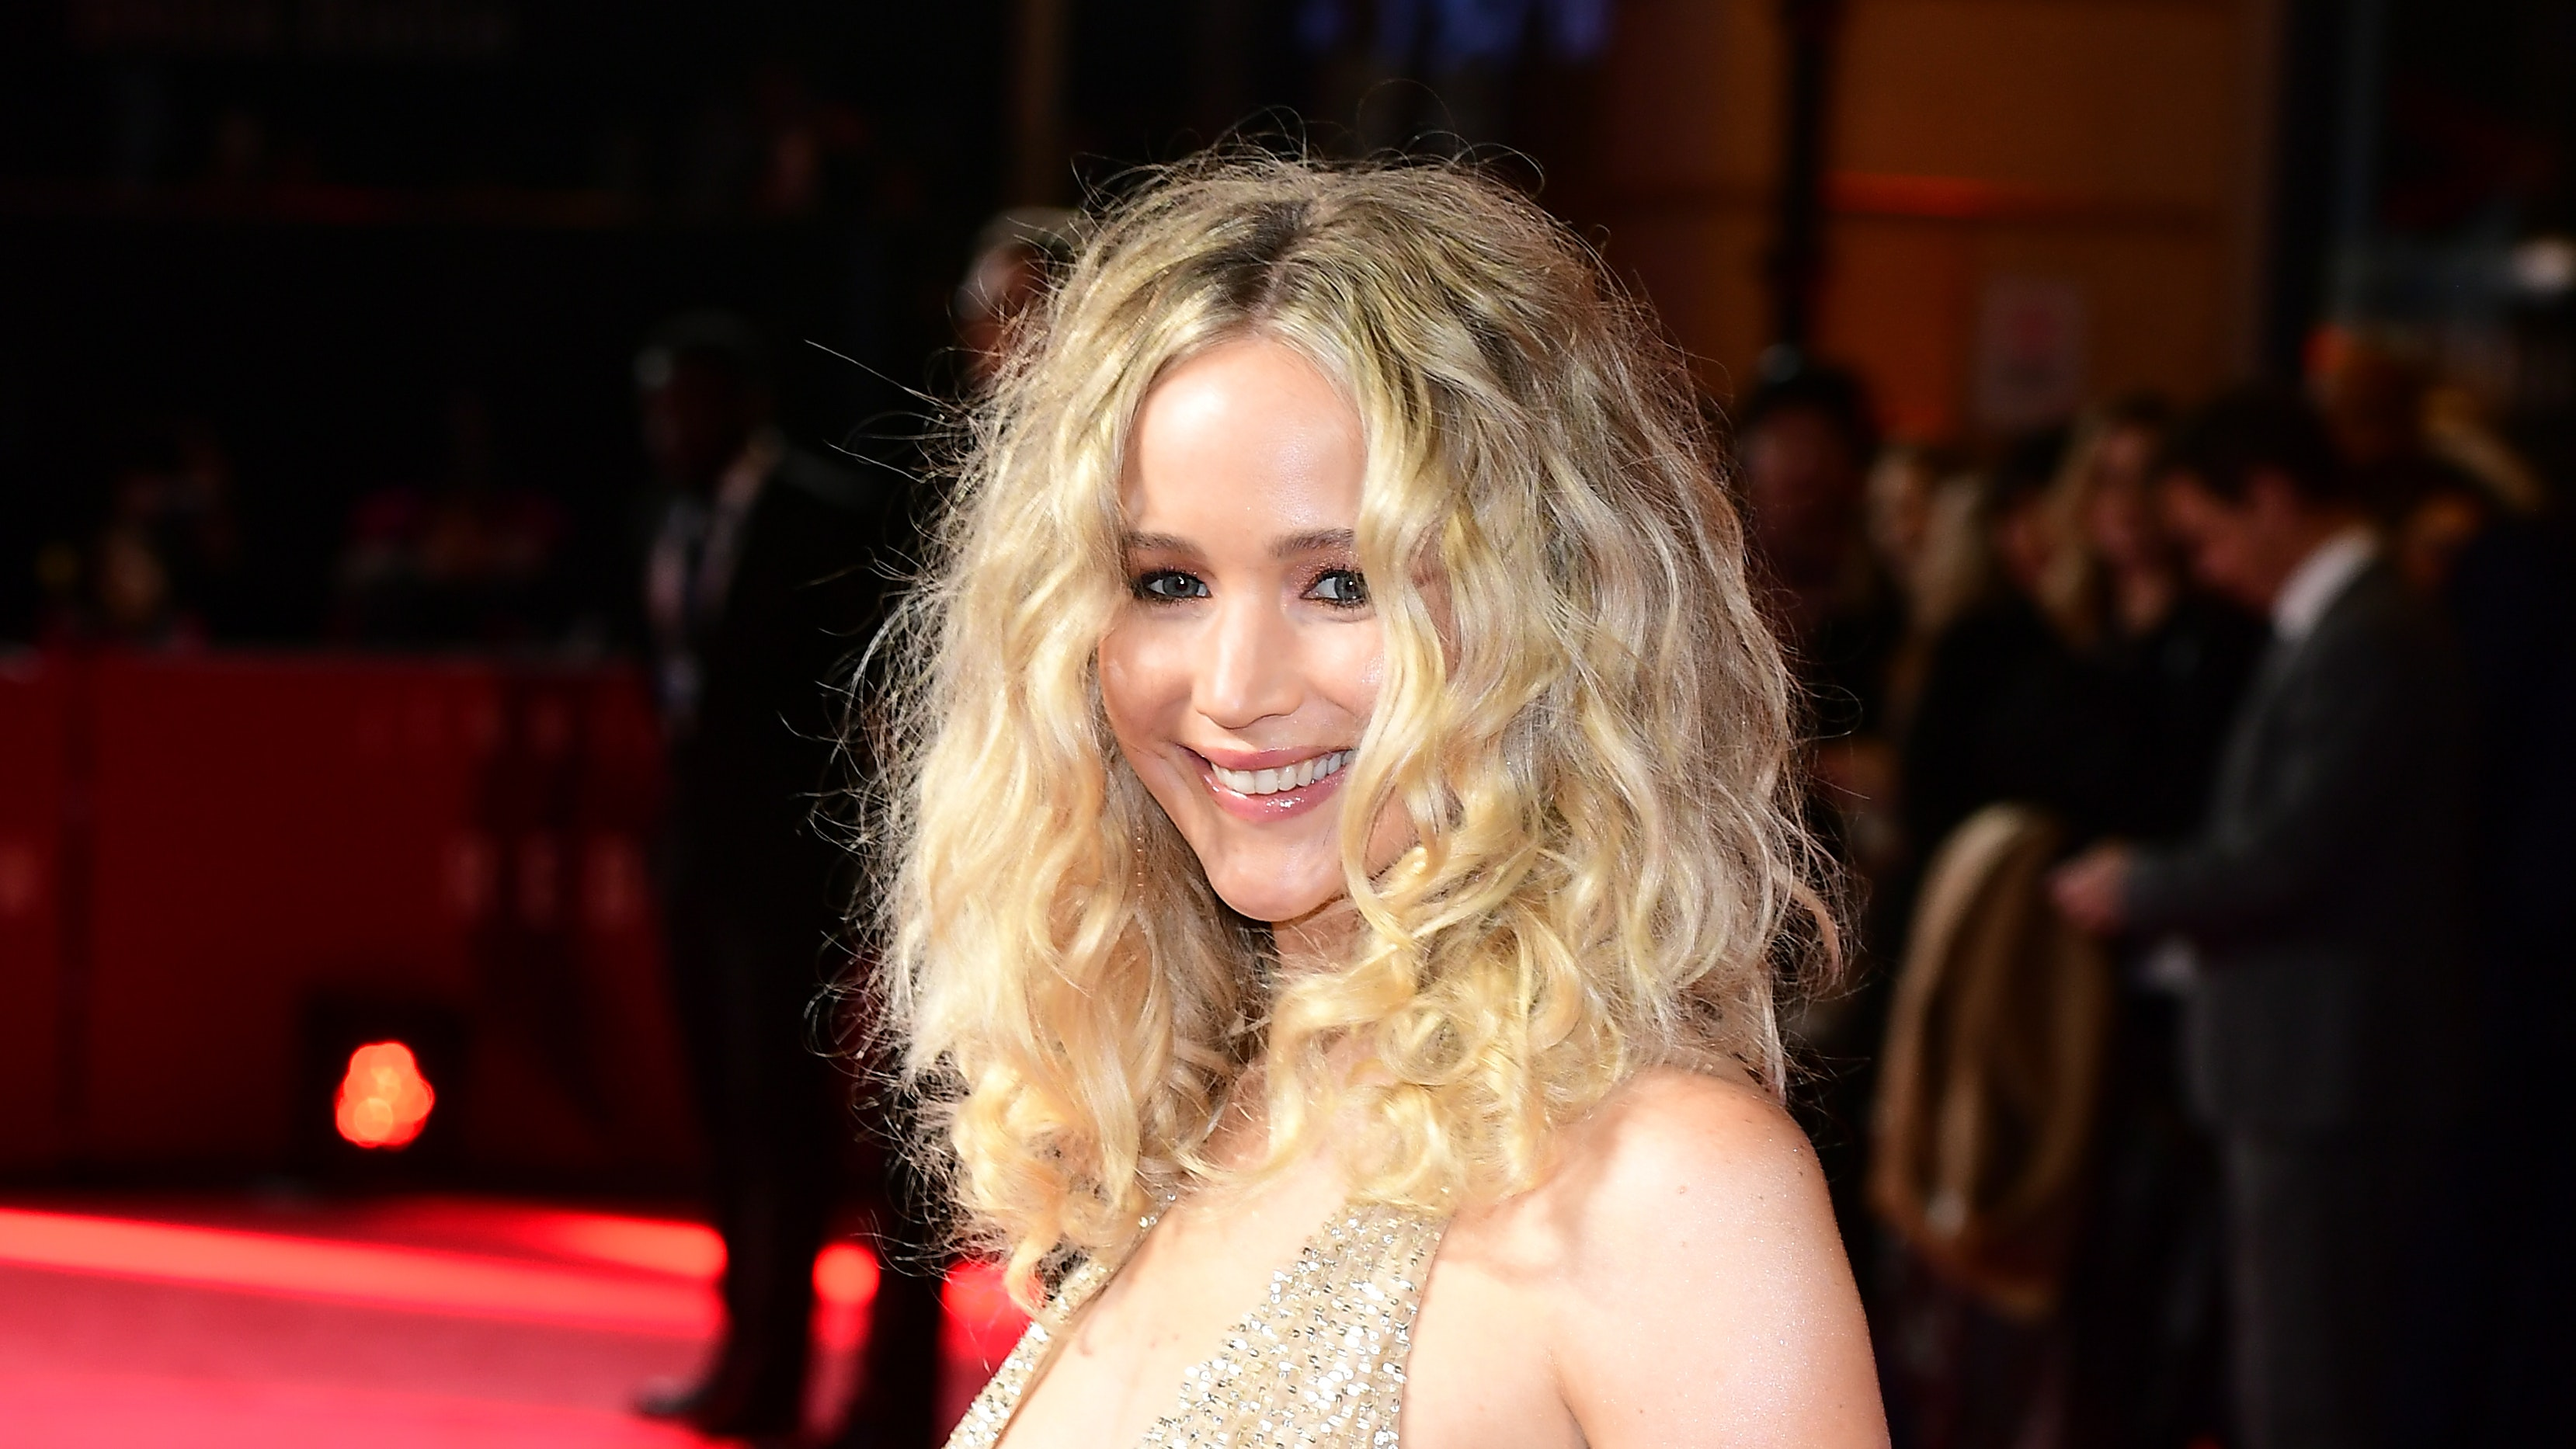 Jennifer Lawrence responds to critics over outfit choice